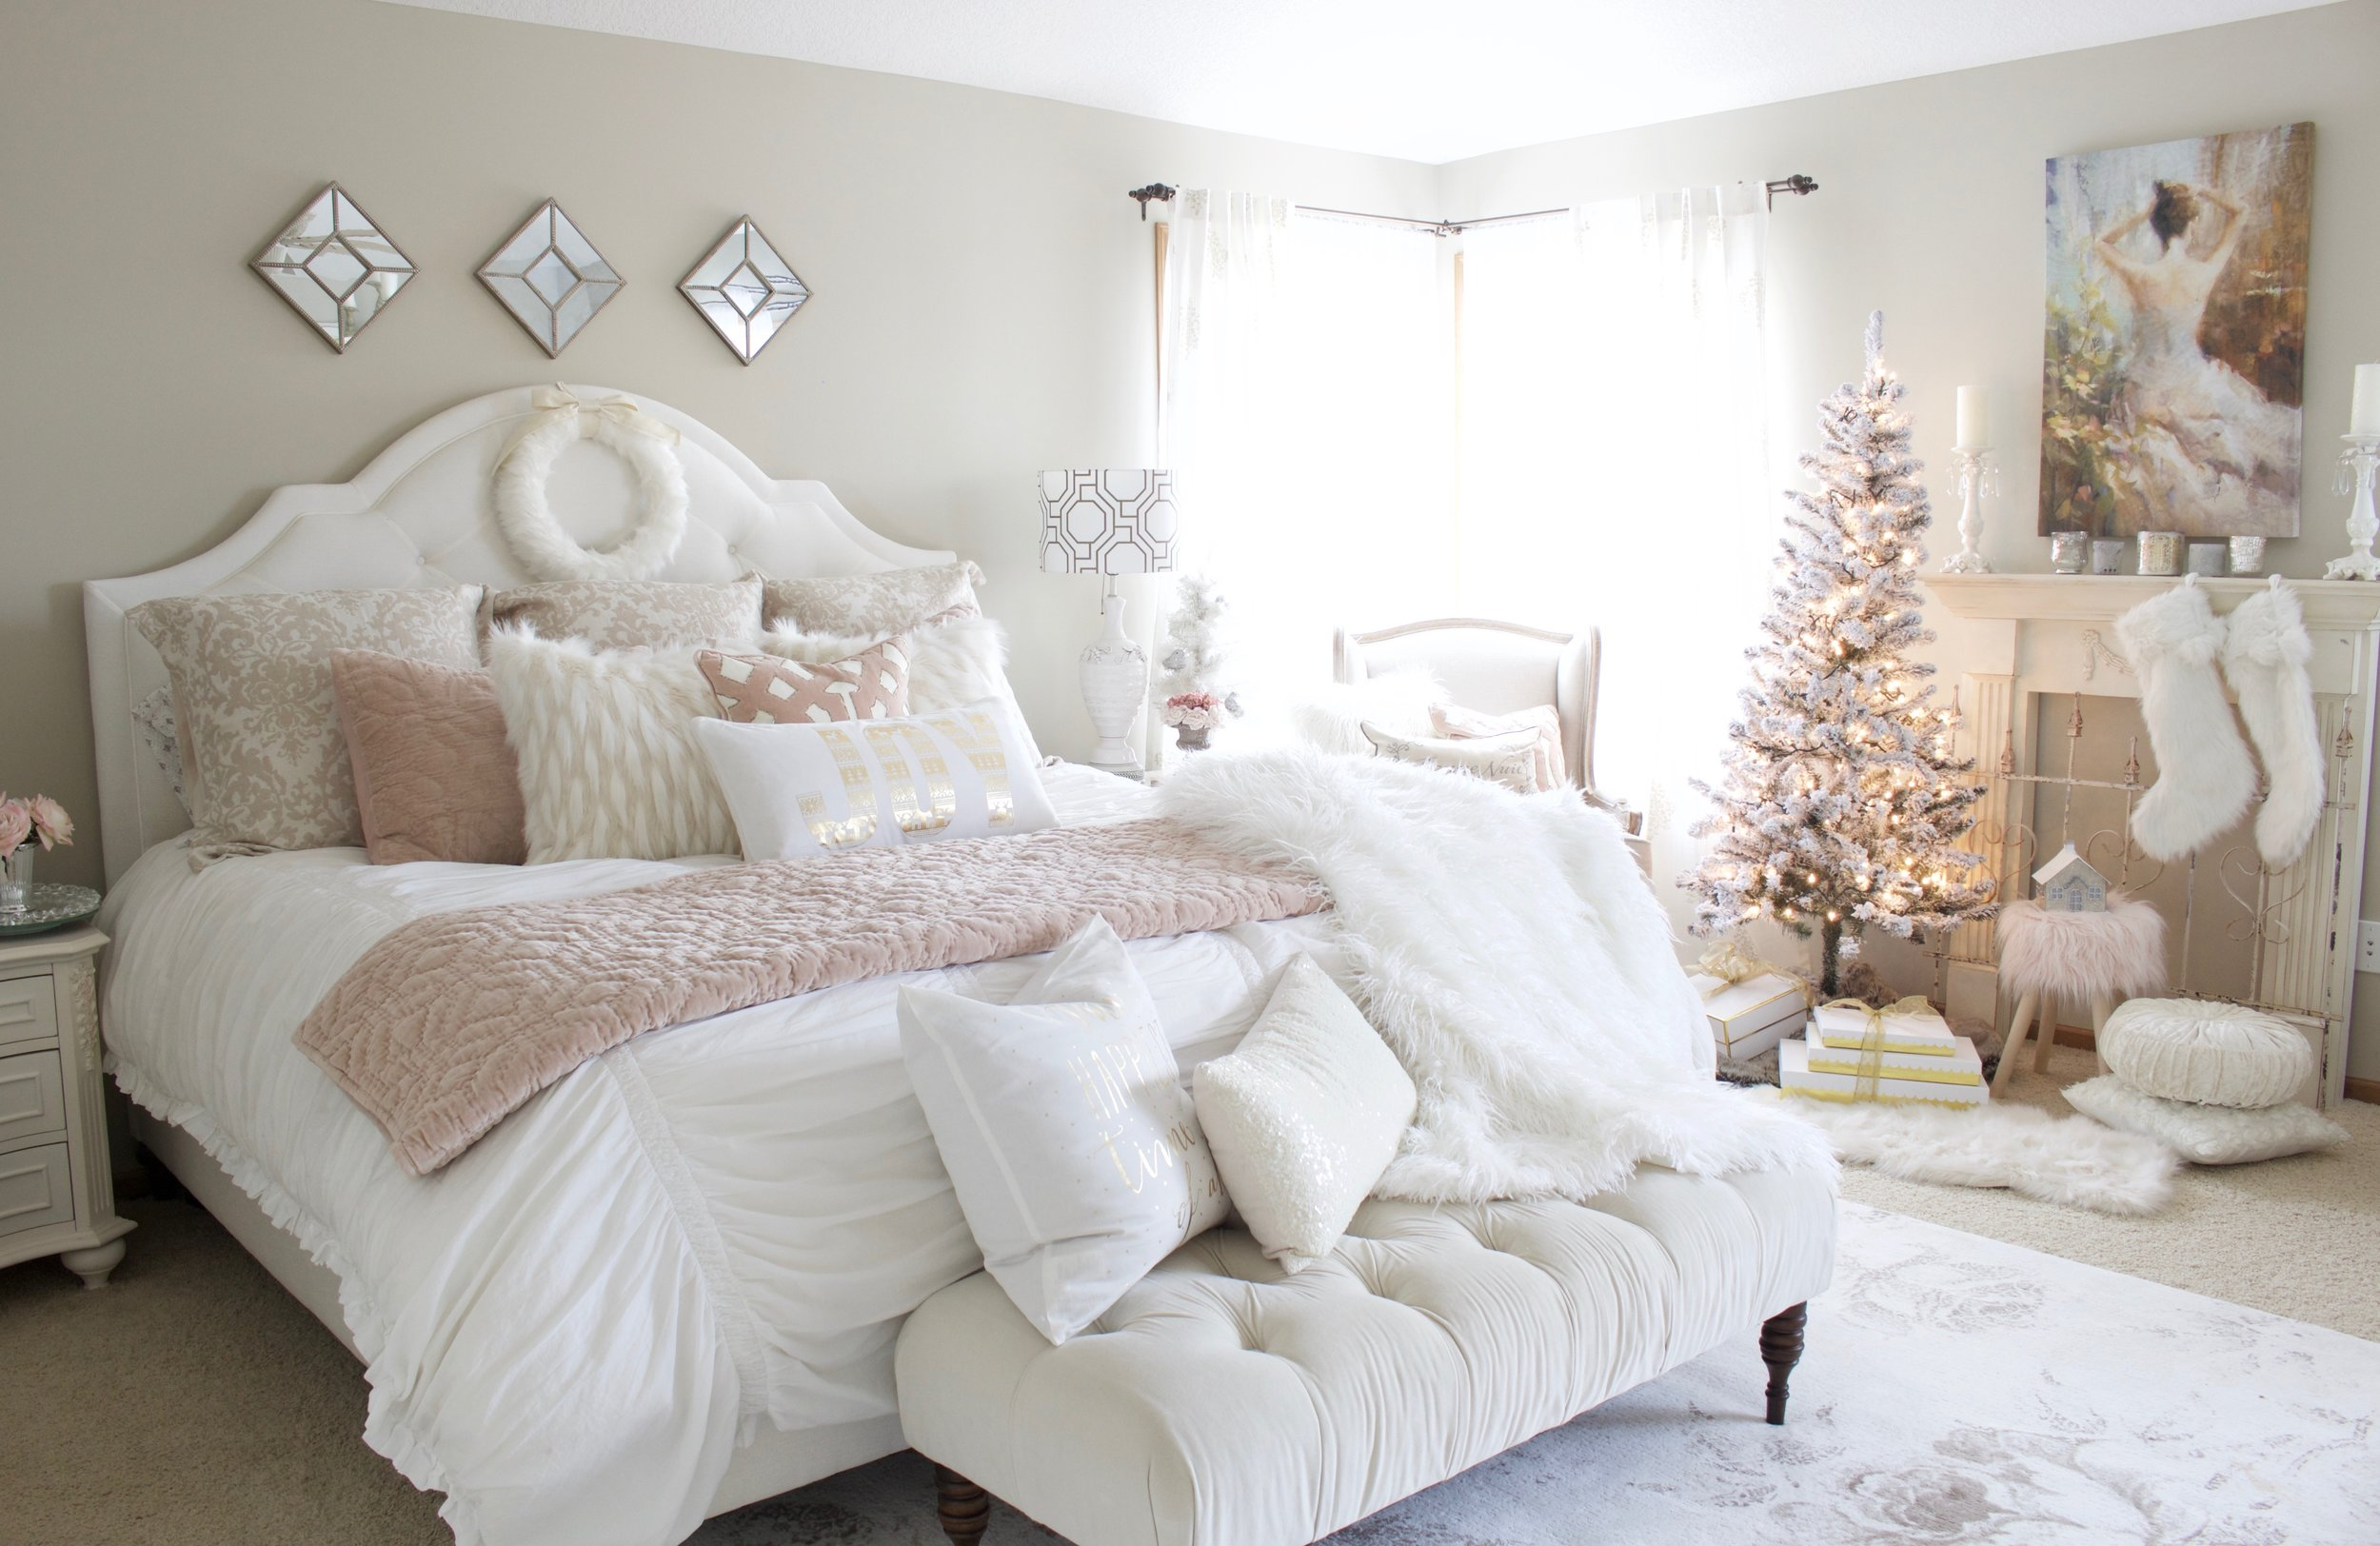 Today We Are Sharing My Master Bedroom Decorated For Christmas With A French Vibe And Touch Of Blush Pink You Can Check Out More Our Rooms